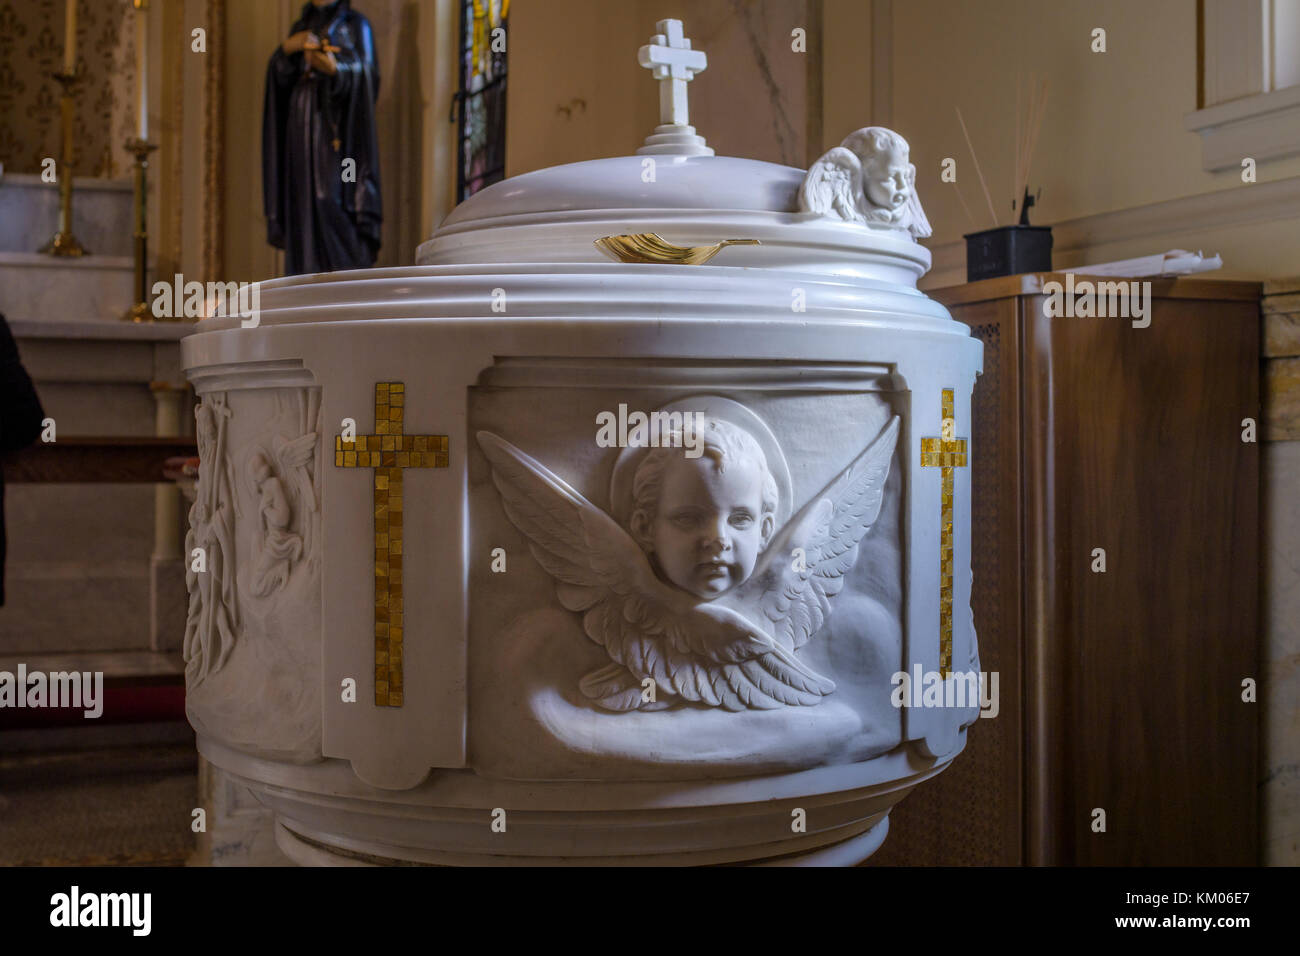 Baptismal basin in Catholic church, Washington D.C., USA. - Stock Image